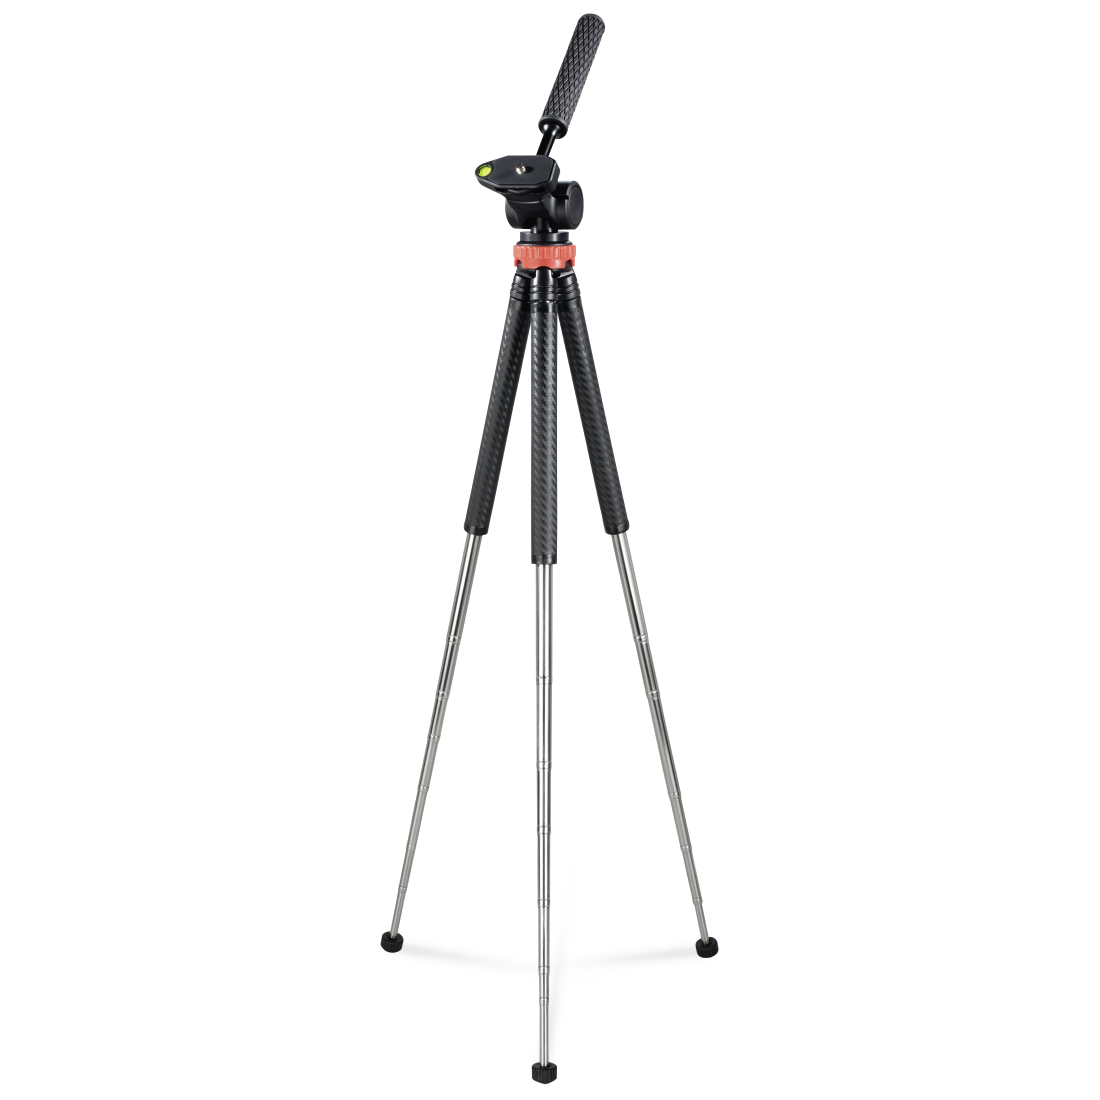 "abx2 High-Res Image 2 - Hama, ""Traveller Pro"" Tripod for Smartphones, GoPros, Photo Cameras, 106 - 2D"